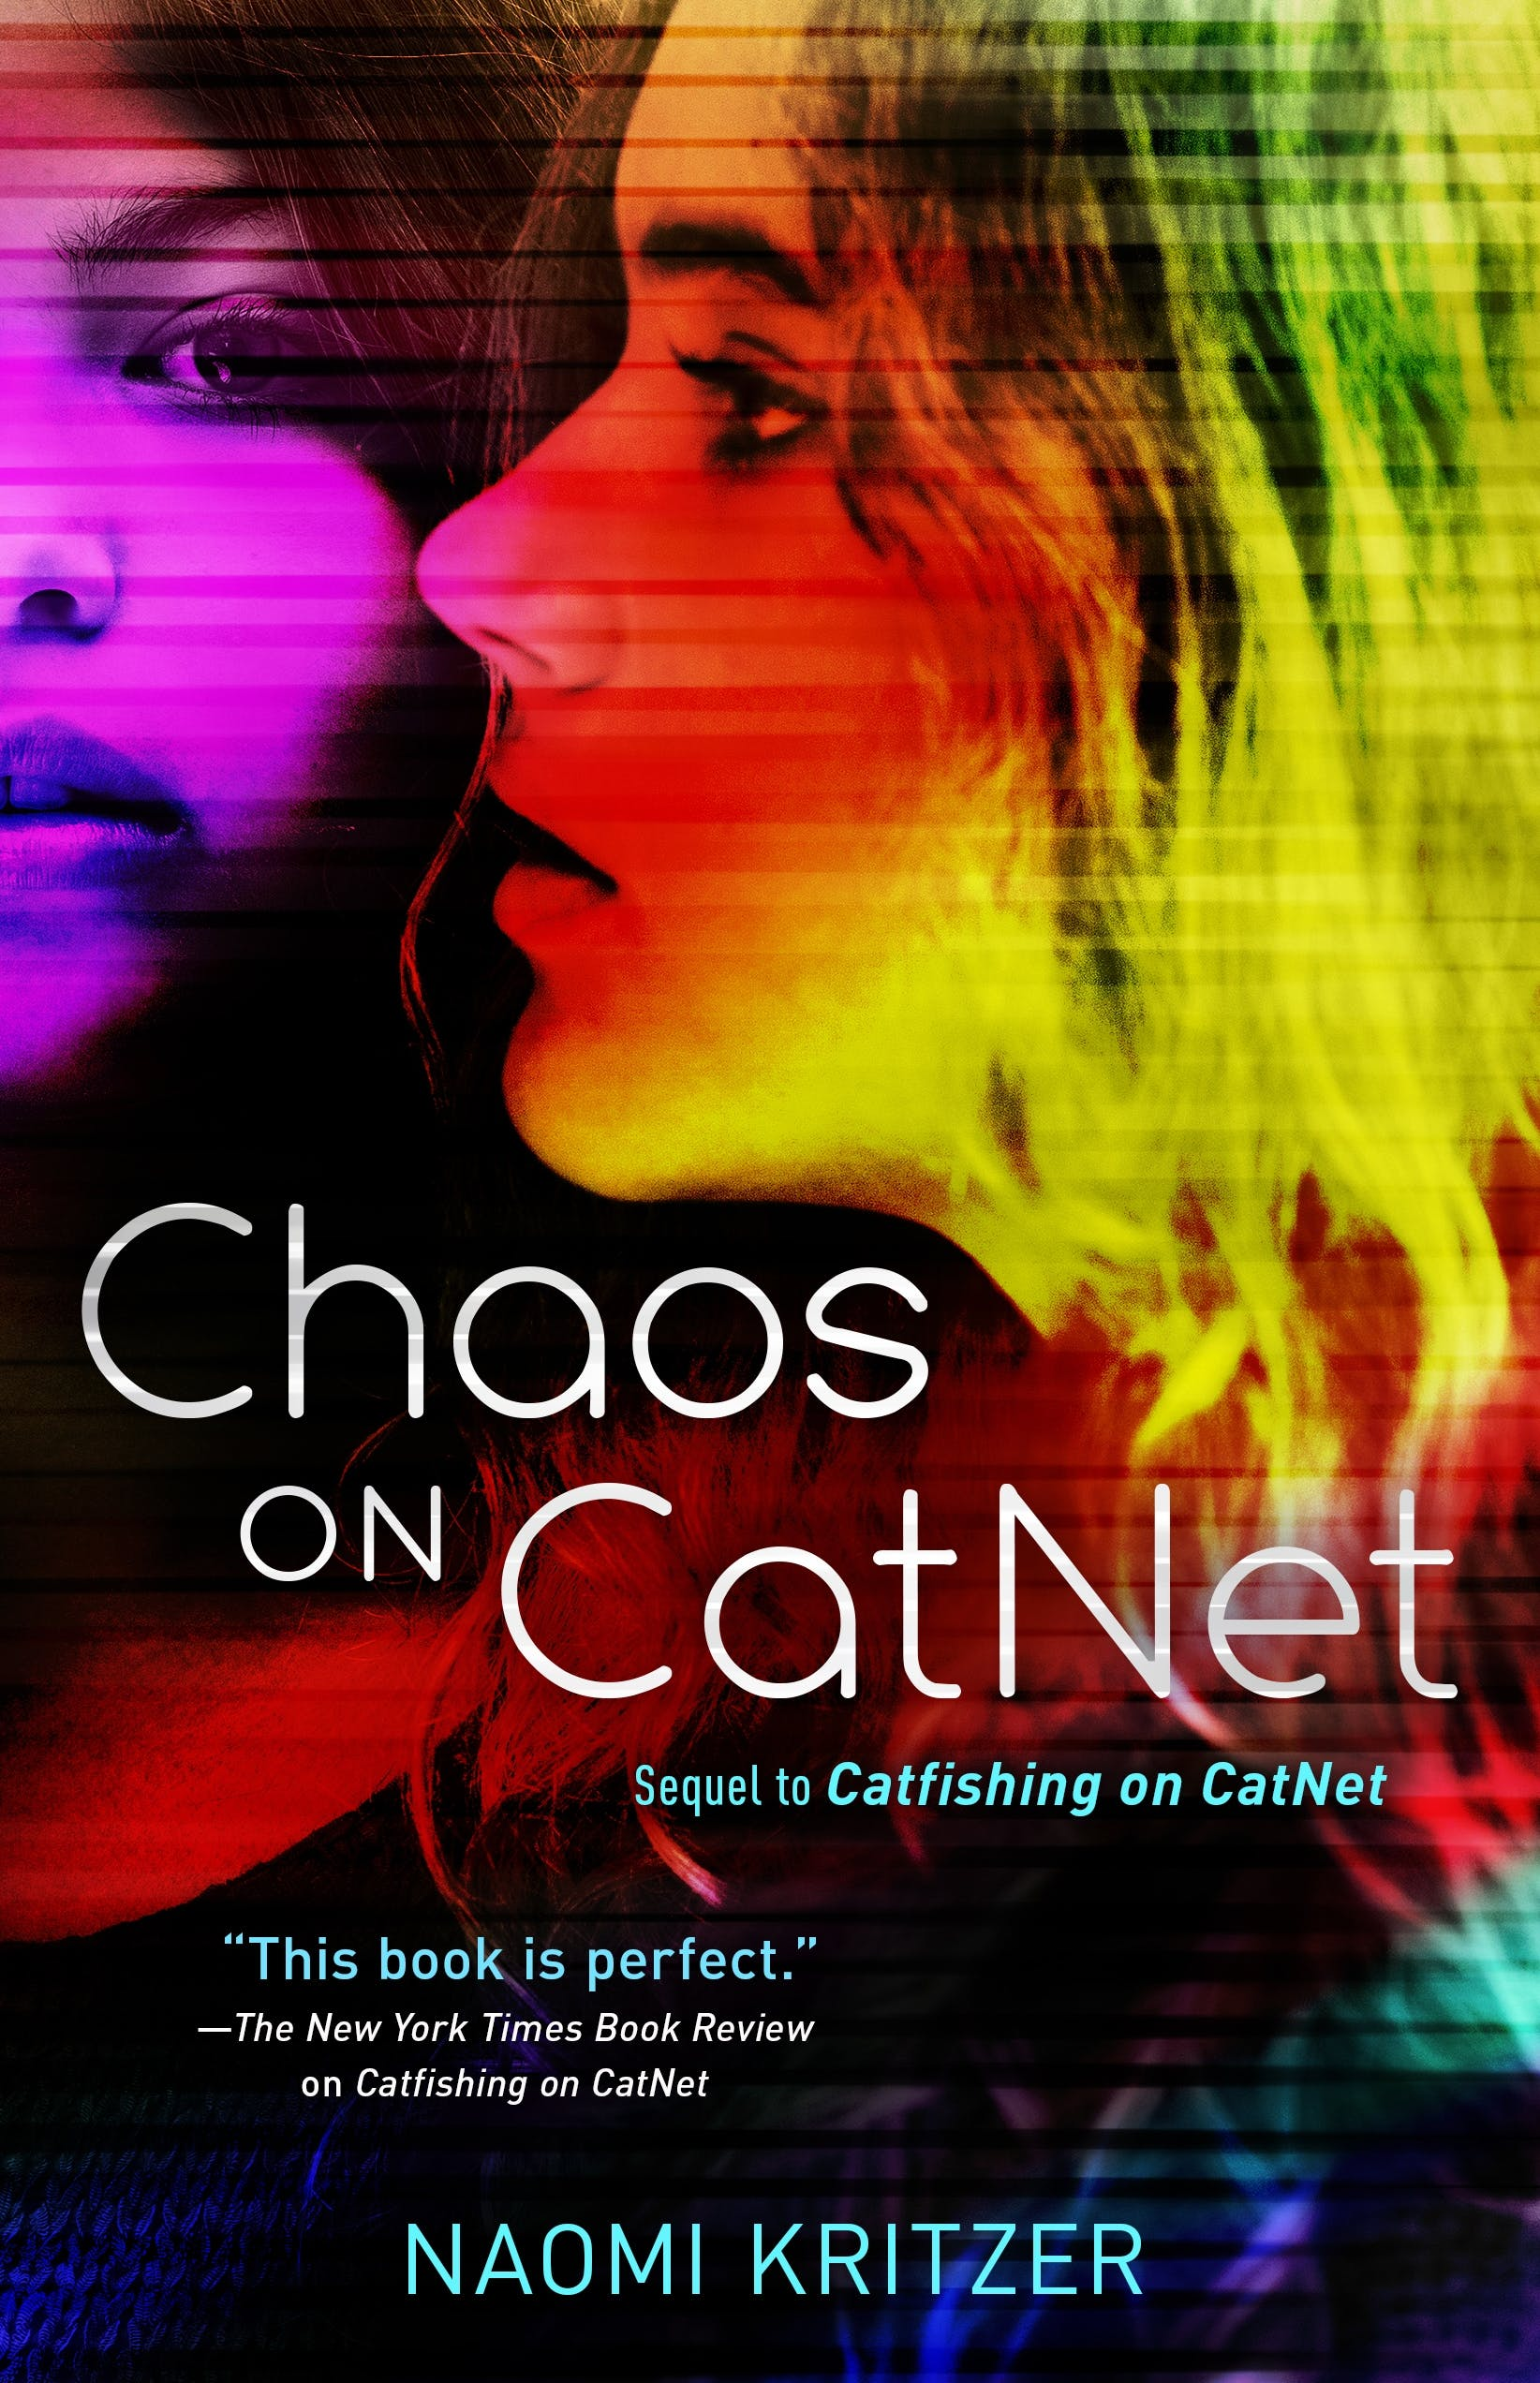 Image of Chaos on CatNet